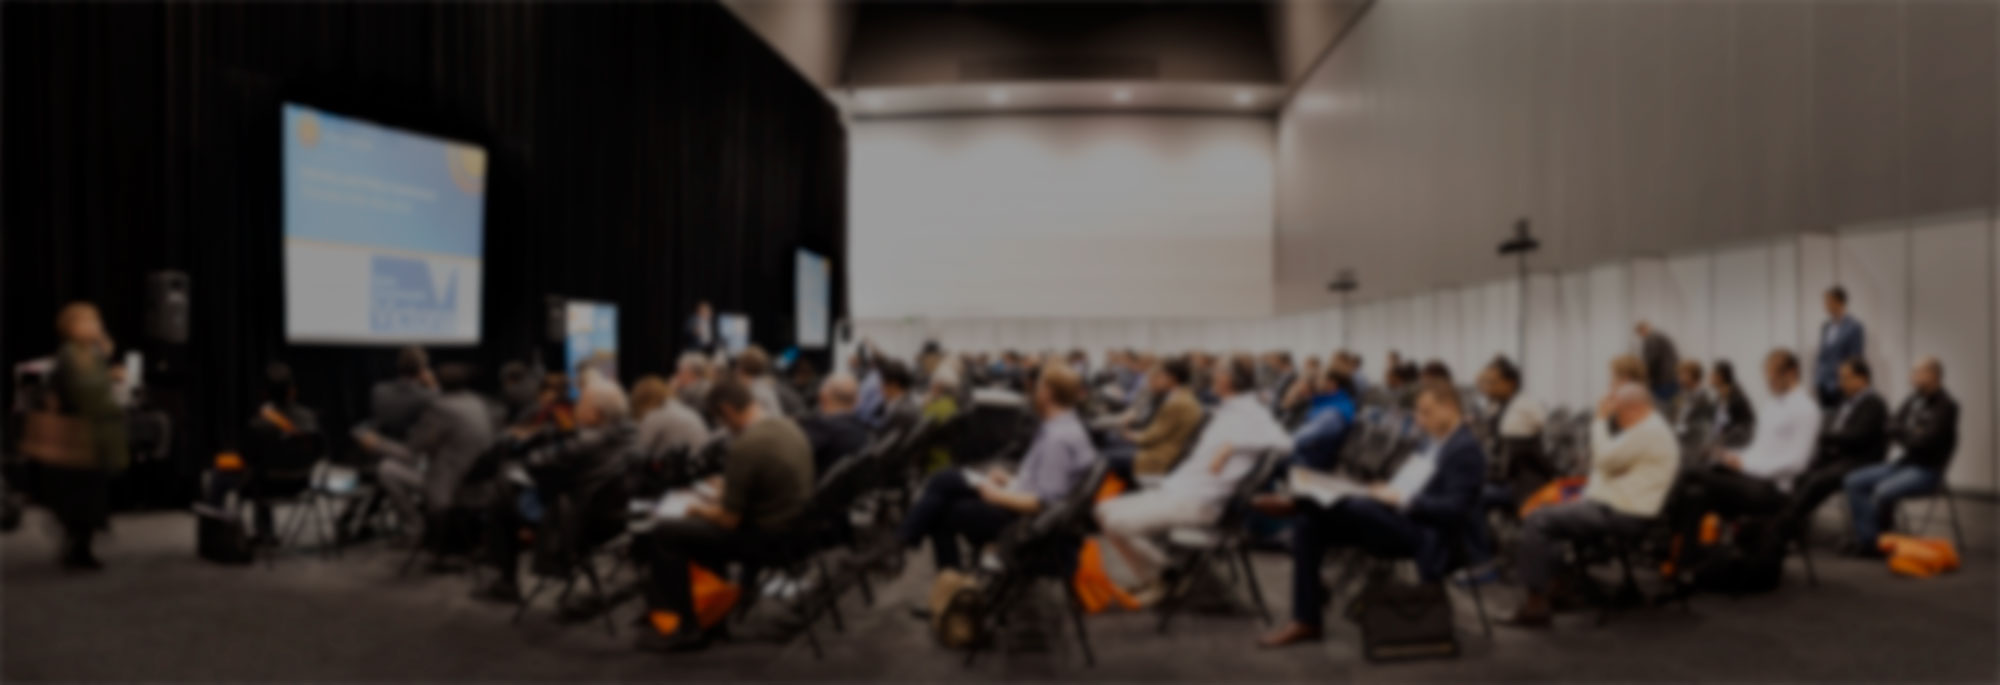 The List: 10 Things You Can Do With AV to Make Your Conference Awesome